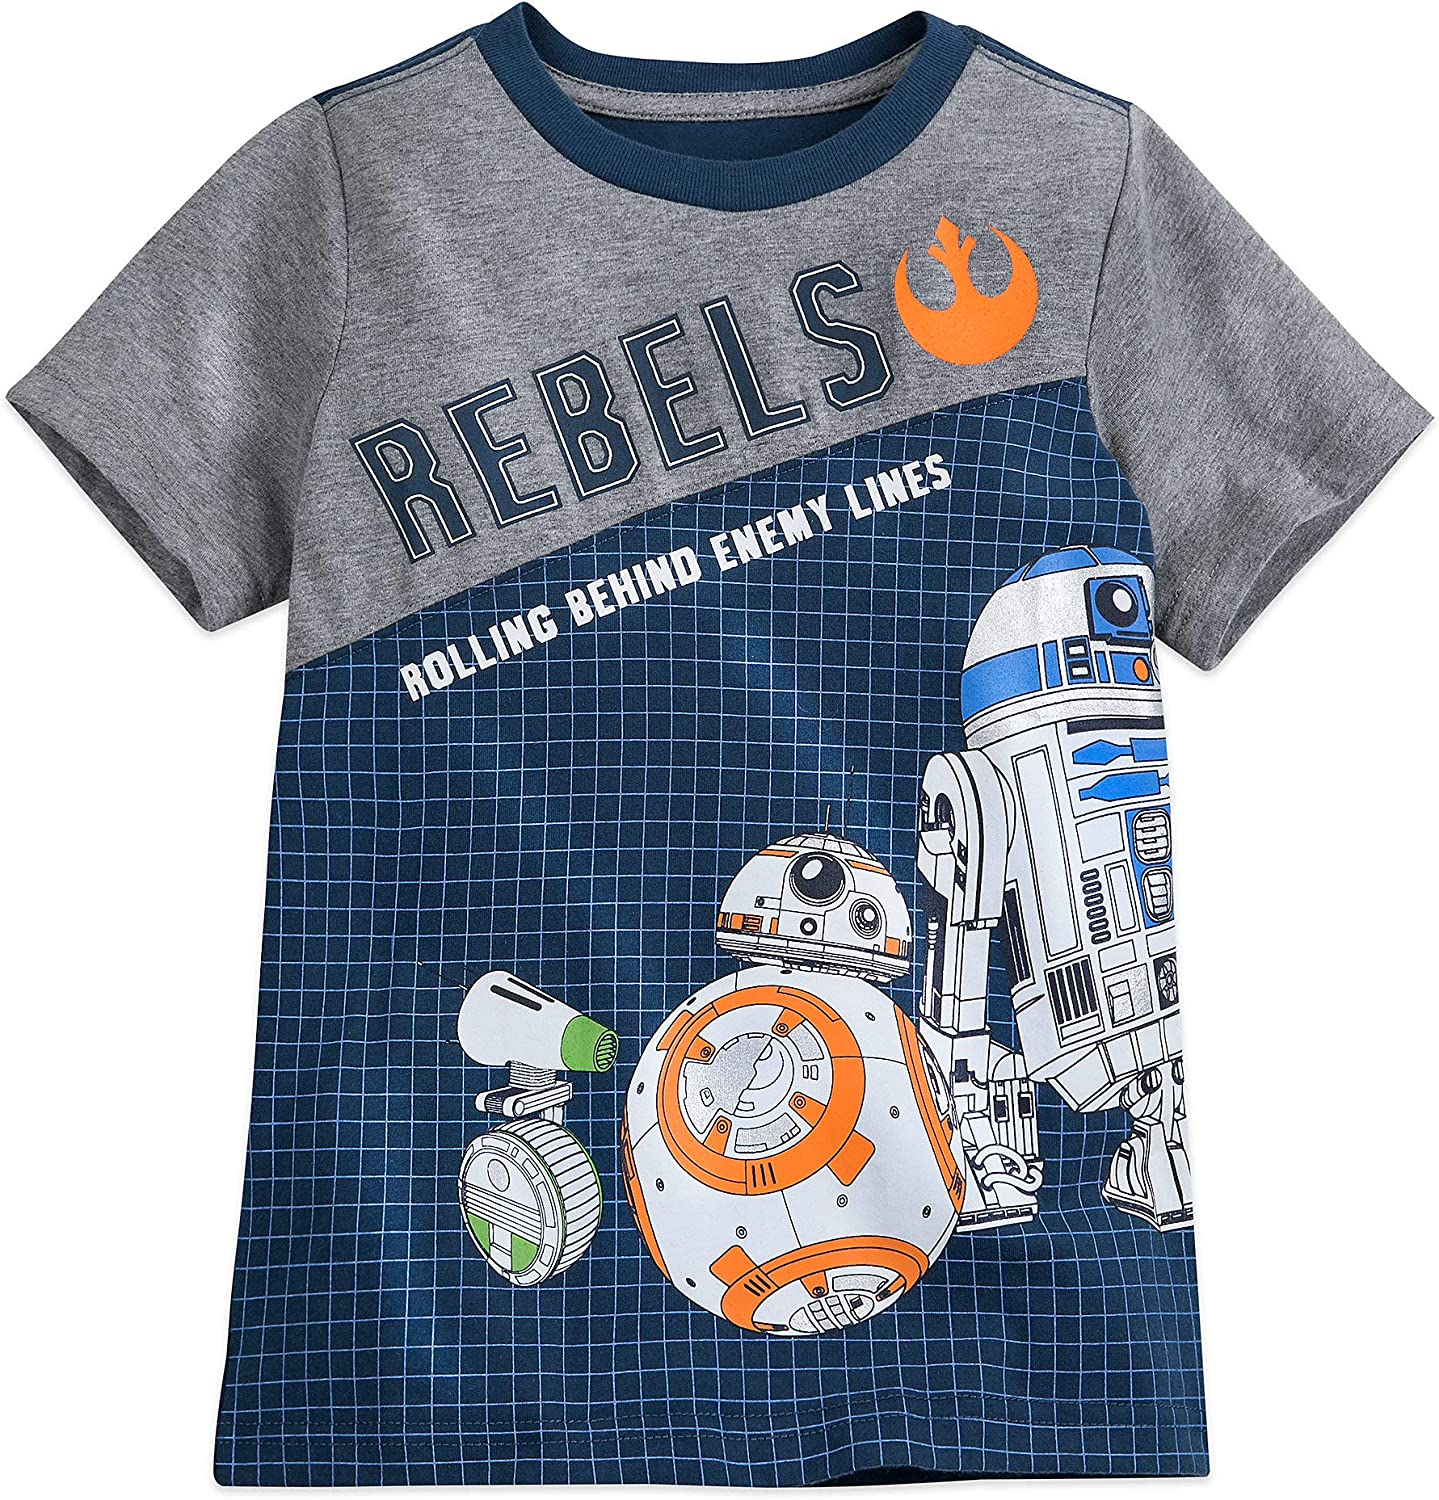 Amazon Com Star Wars Bb 8 And D O Fashion T Shirt For Boys The Rise Of Skywalker Clothing